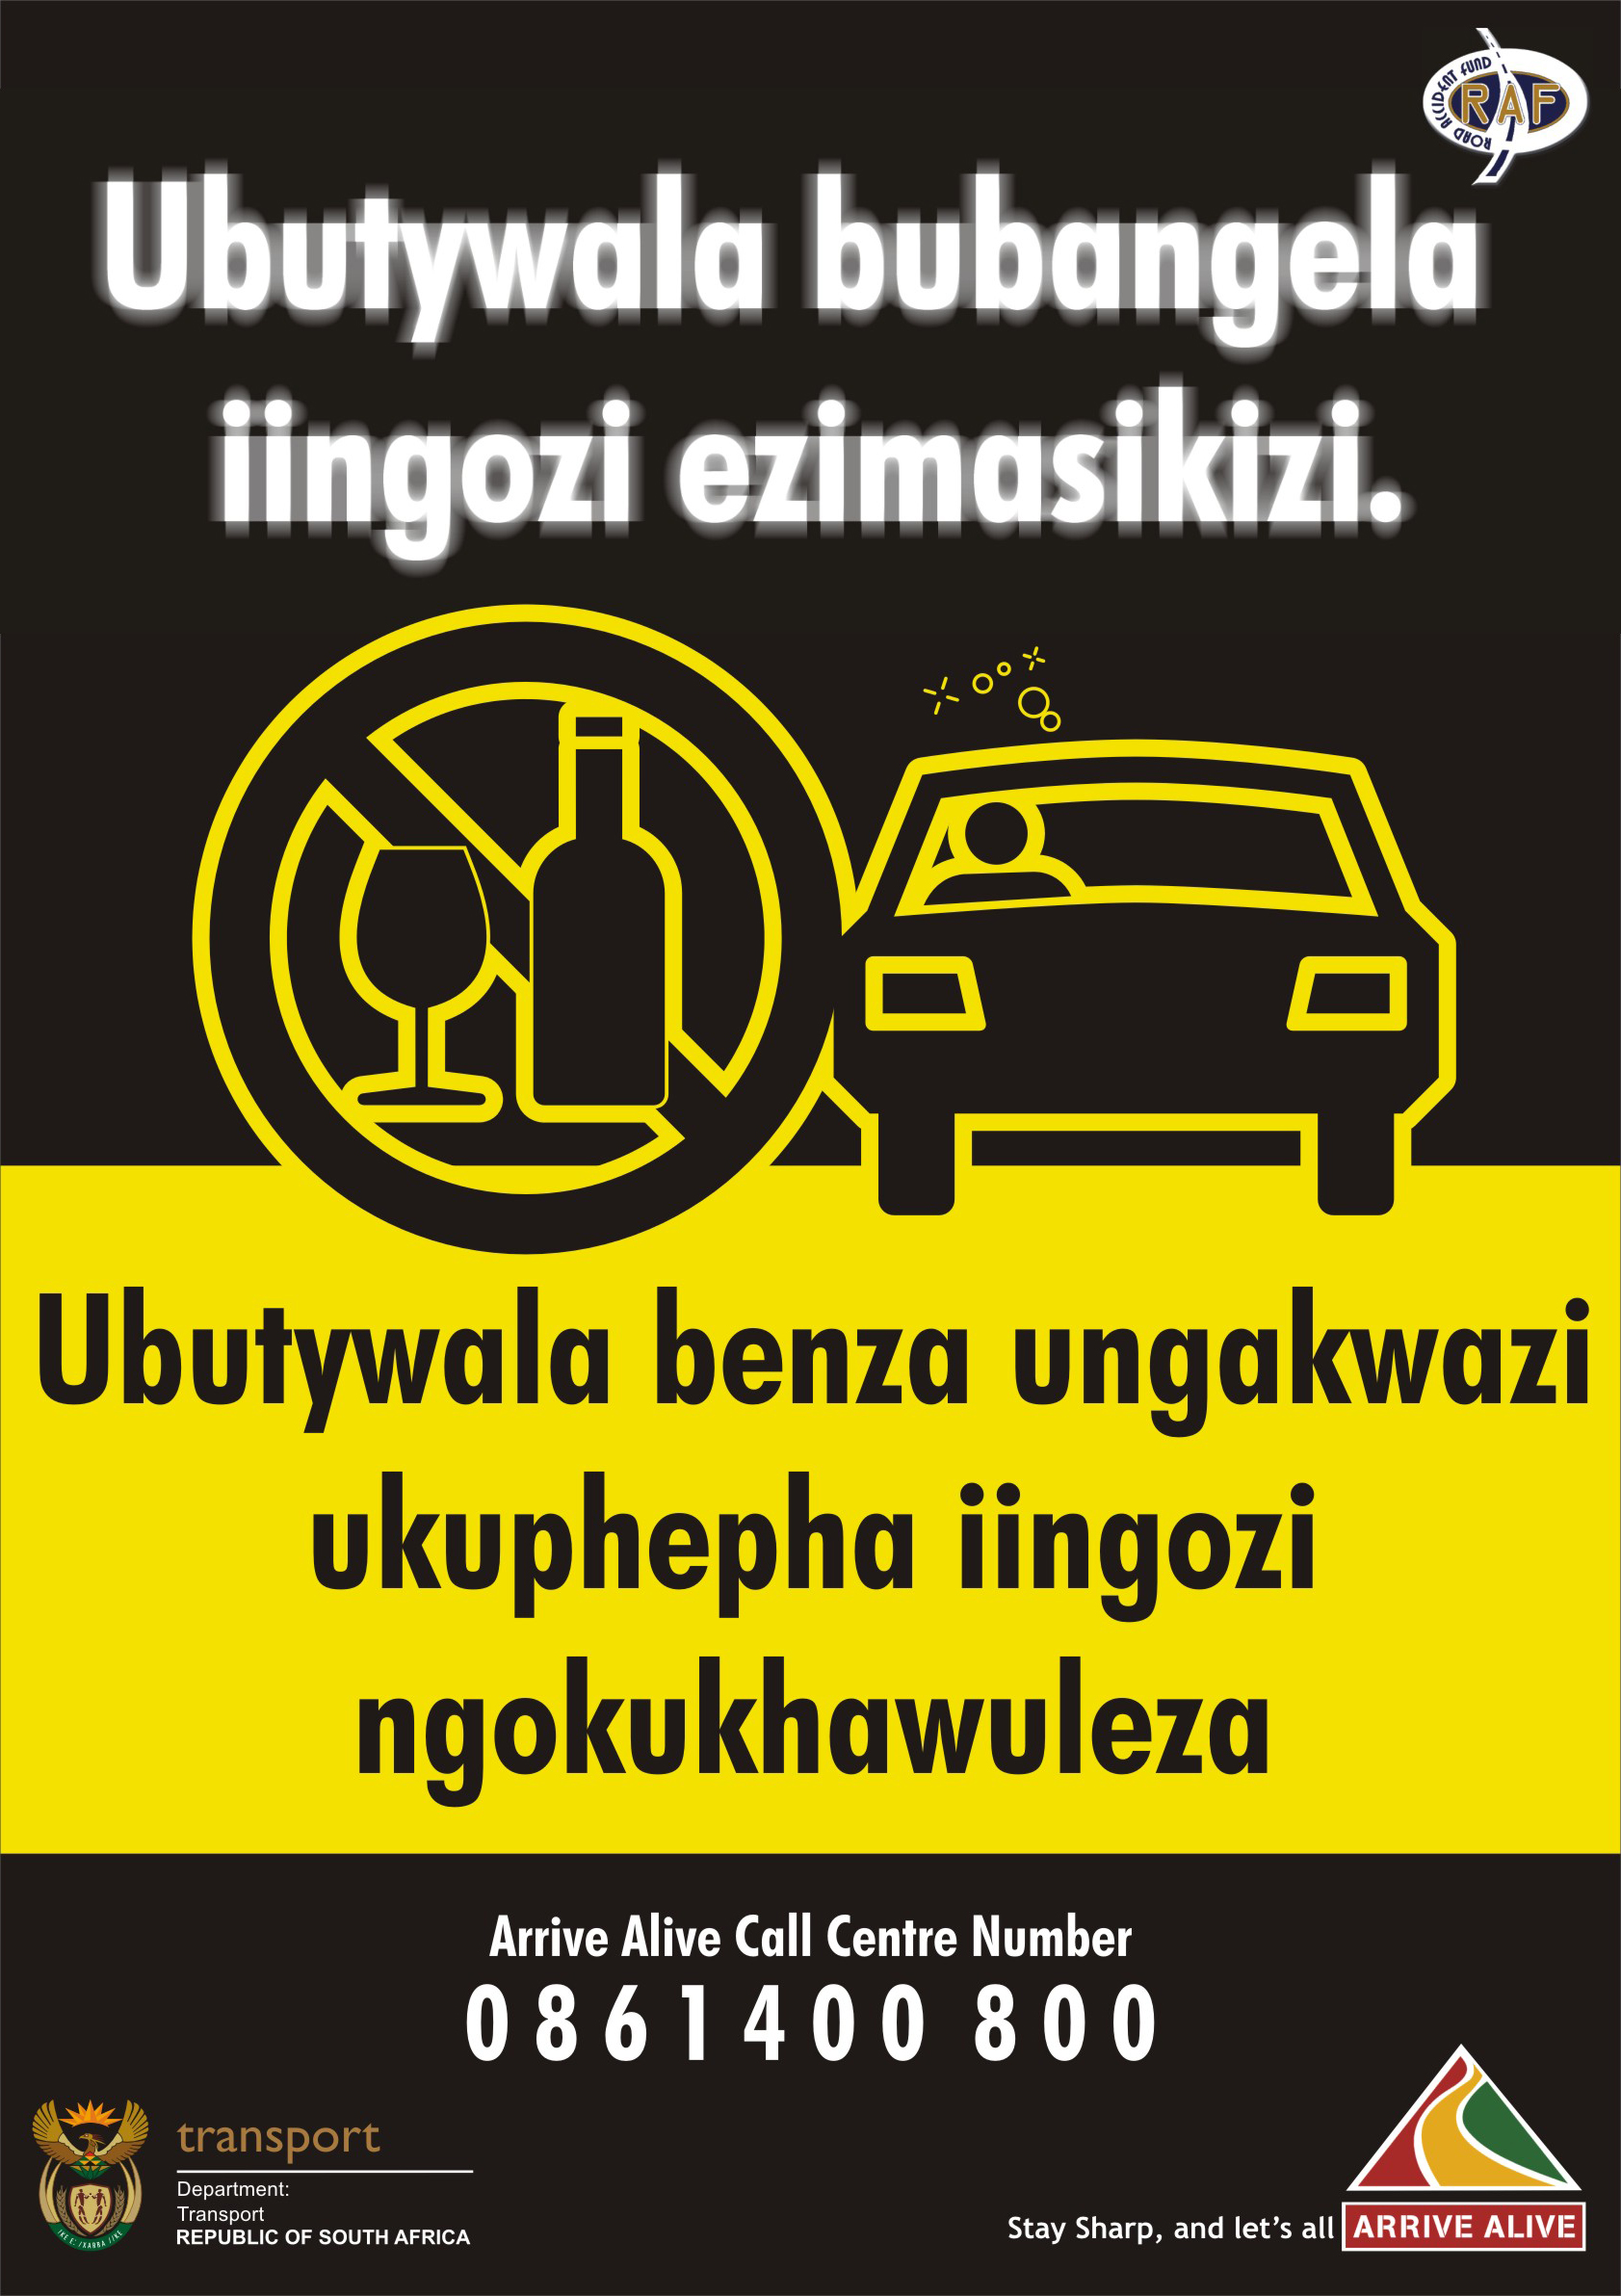 Road Safety Advertisements - Arrive Alive